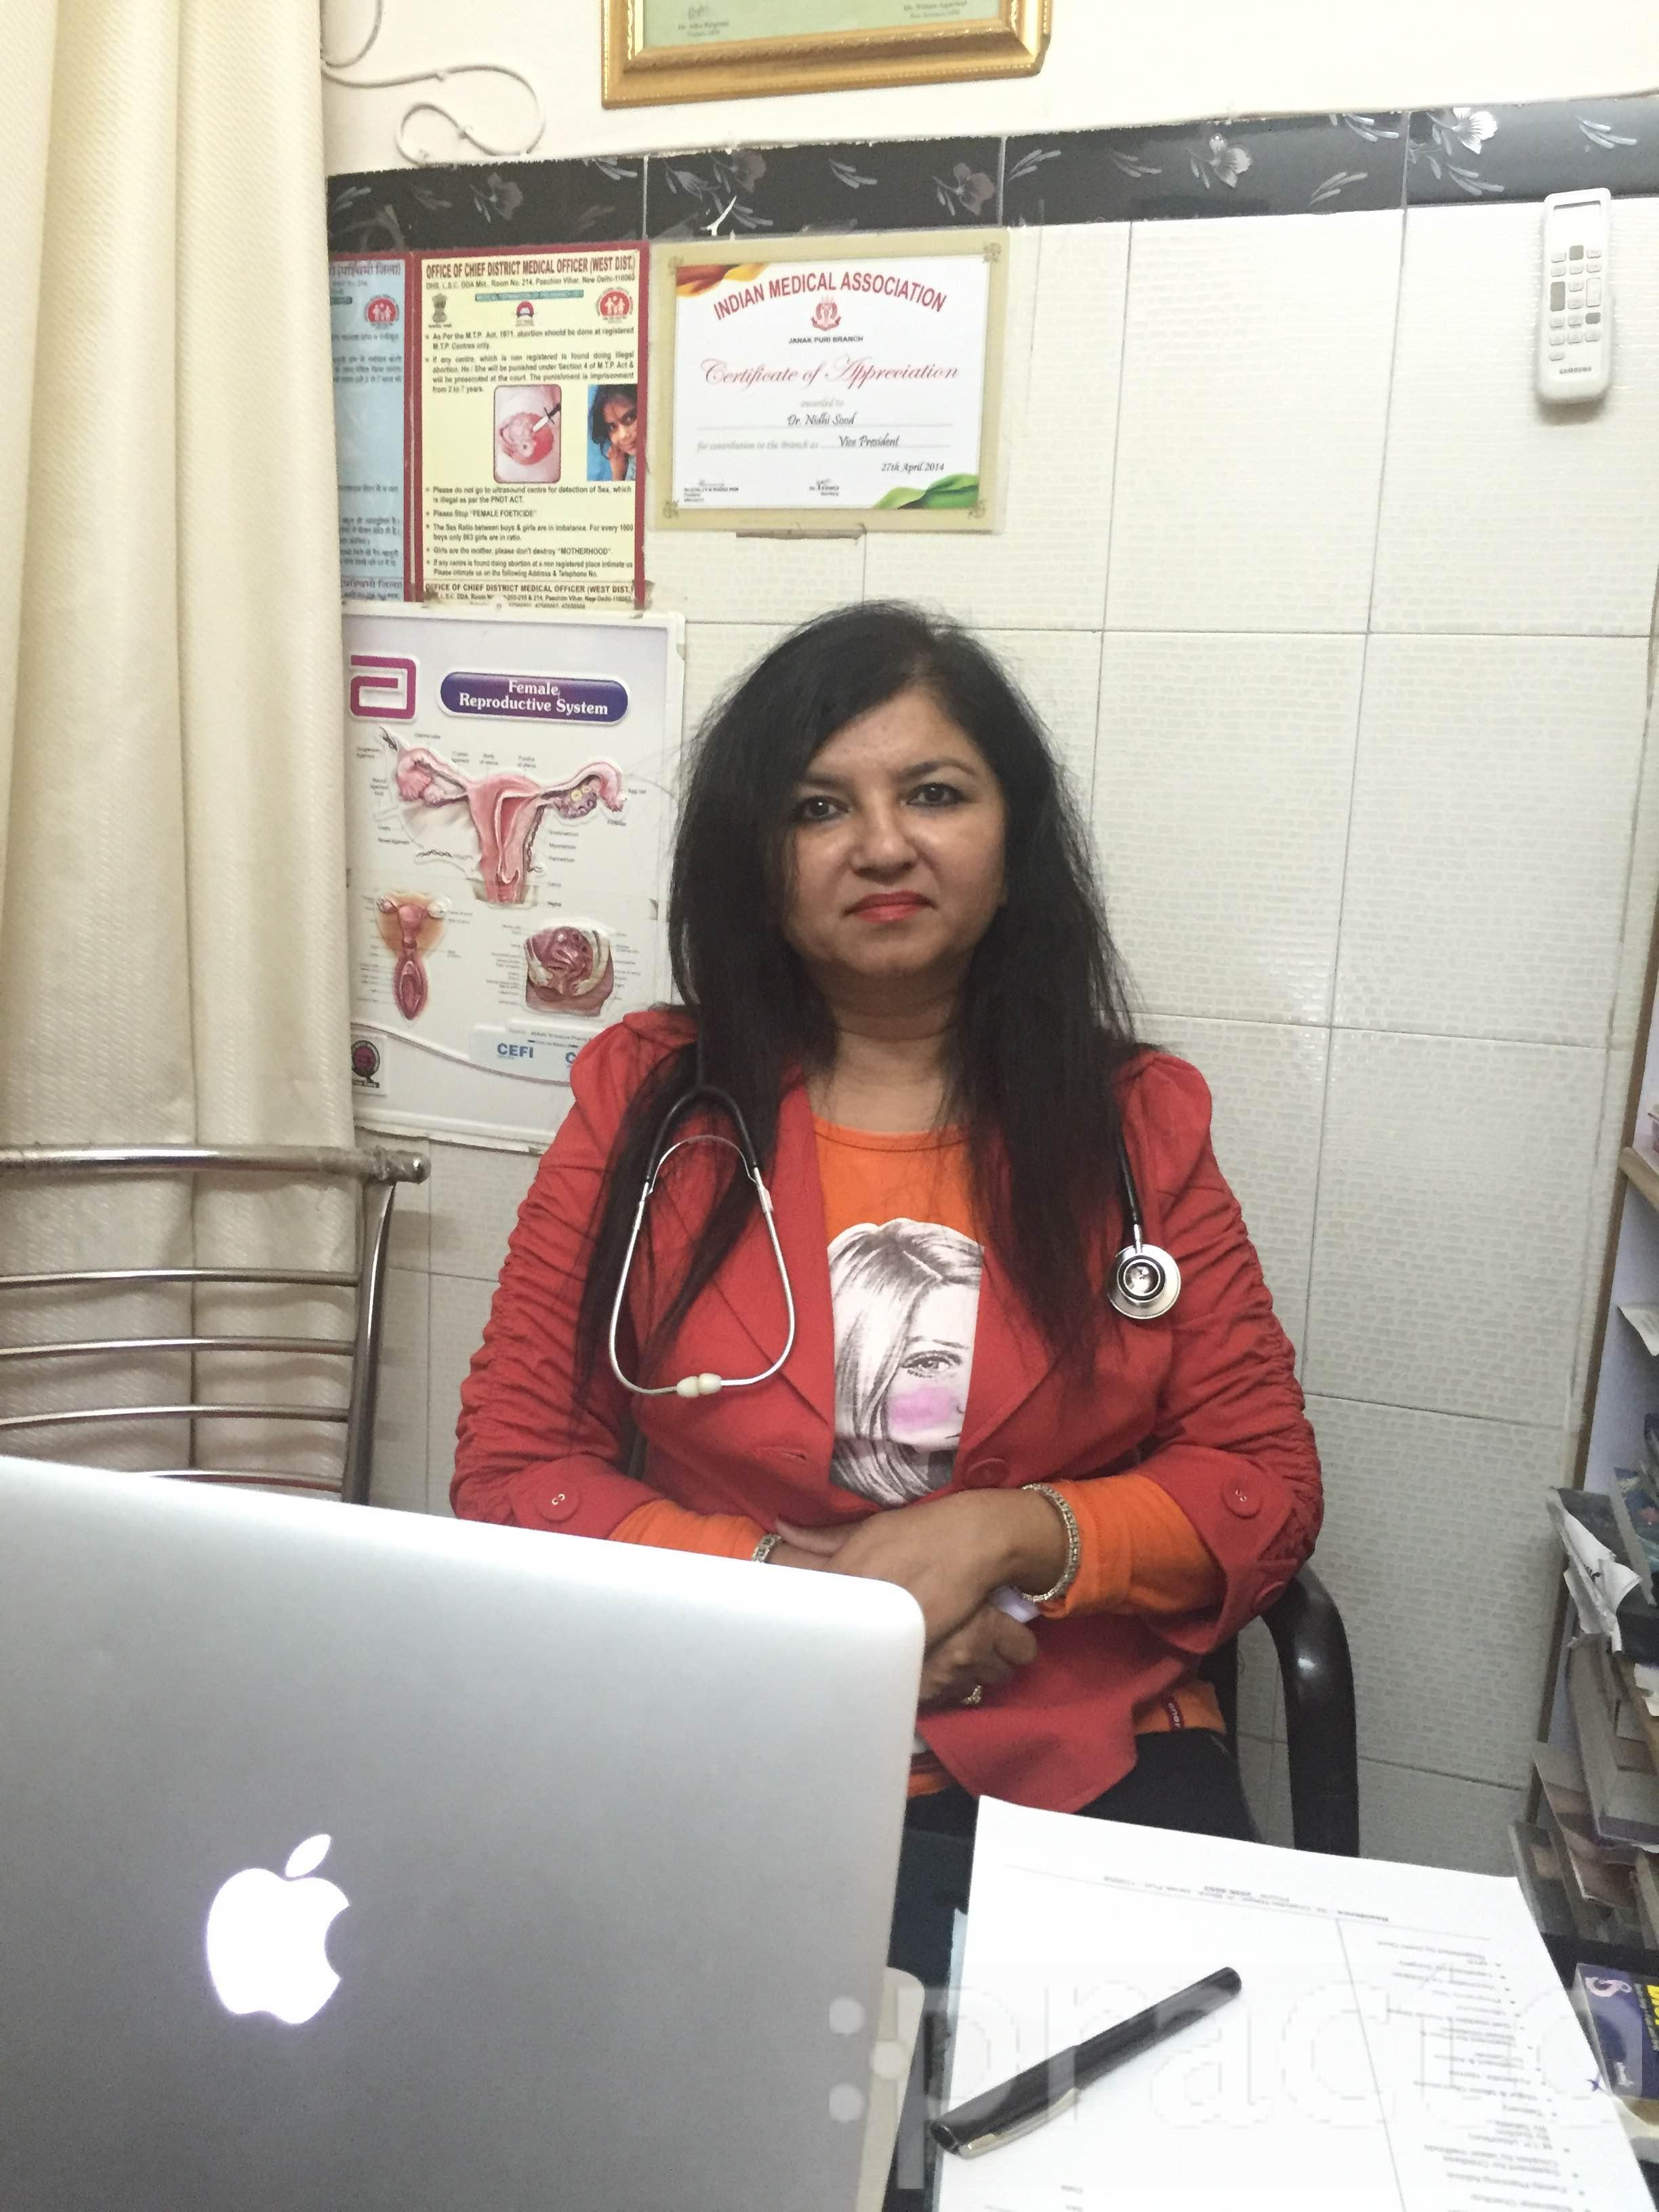 Dr. Nidhi Sood - Gynecologist/Obstetrician